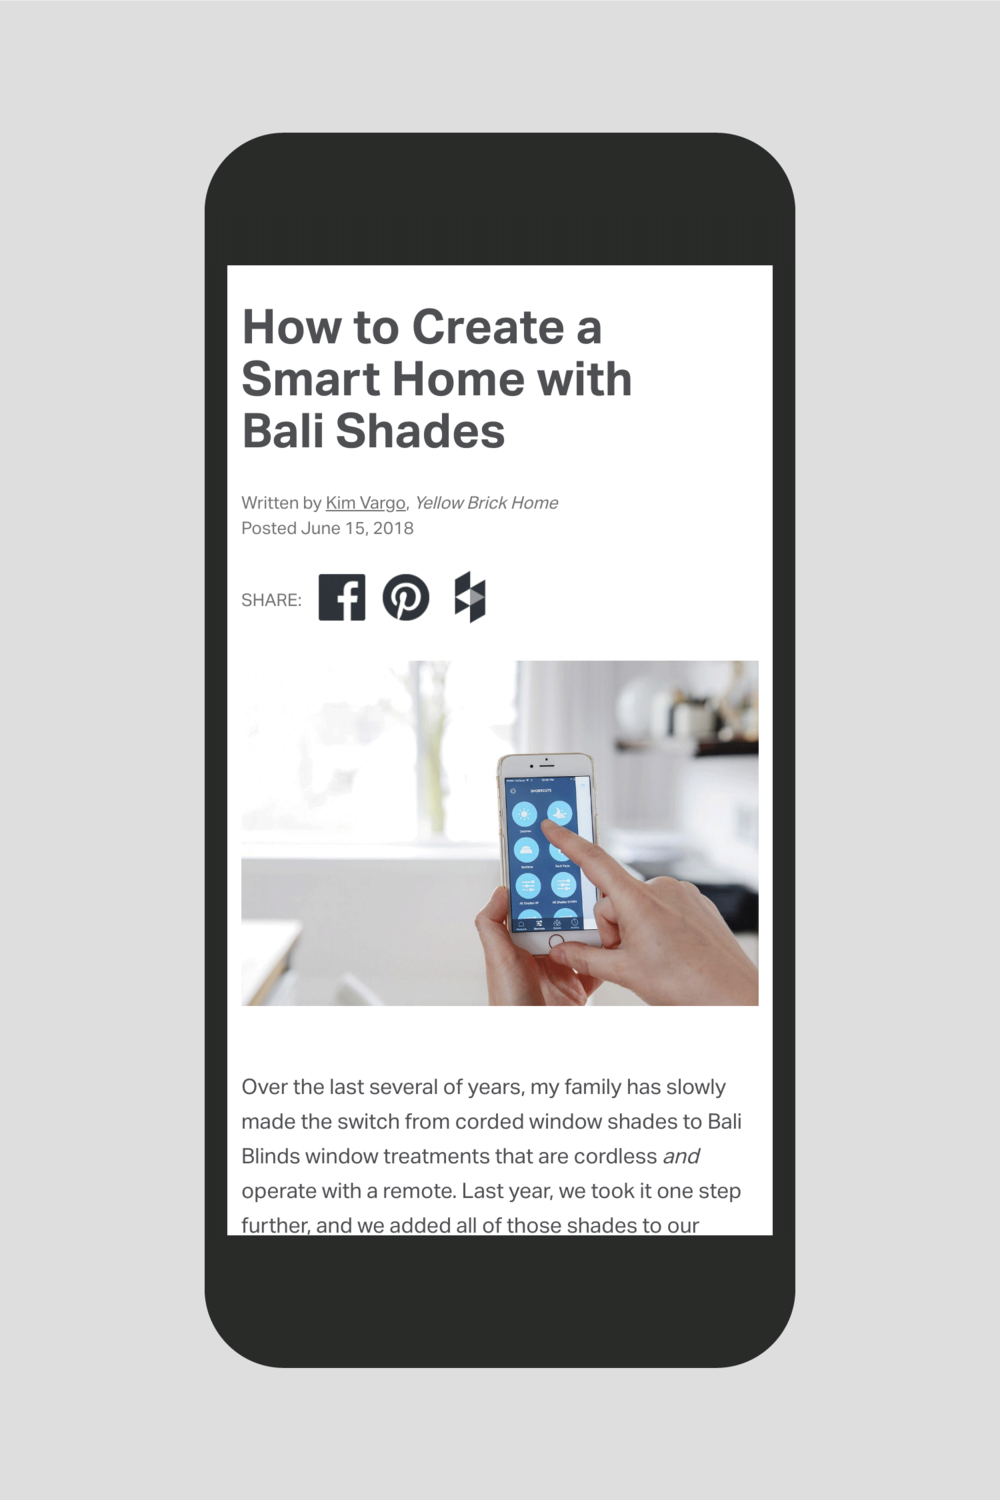 Baliblinds.com Design Blog Article: How to Create a Smart Home with Bali Shades